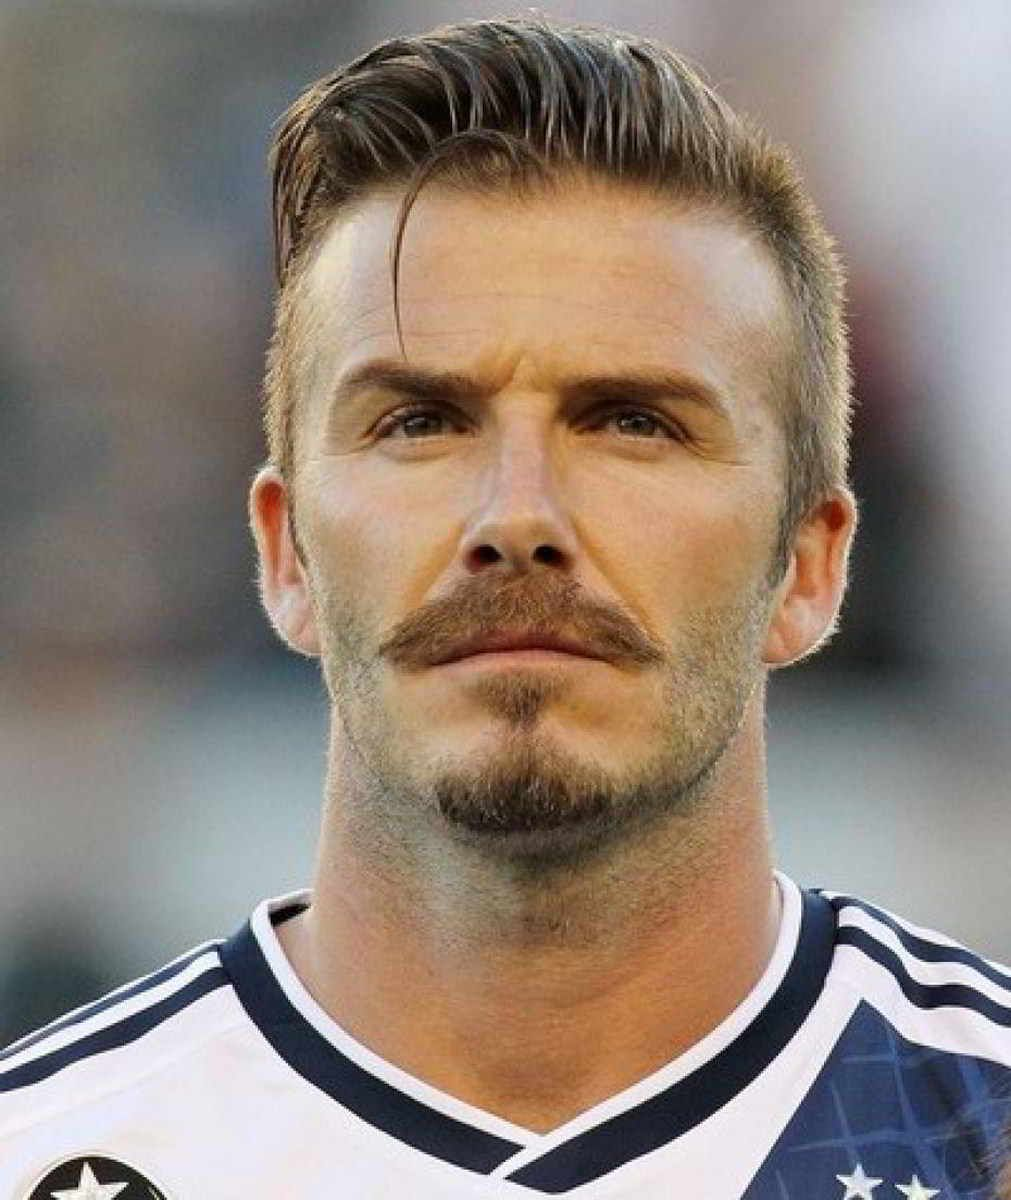 25 Best Pictures Of David Beckham Haircut Blogrope In 2020 David Beckham Hairstyle Beckham Haircut Beckham Hair